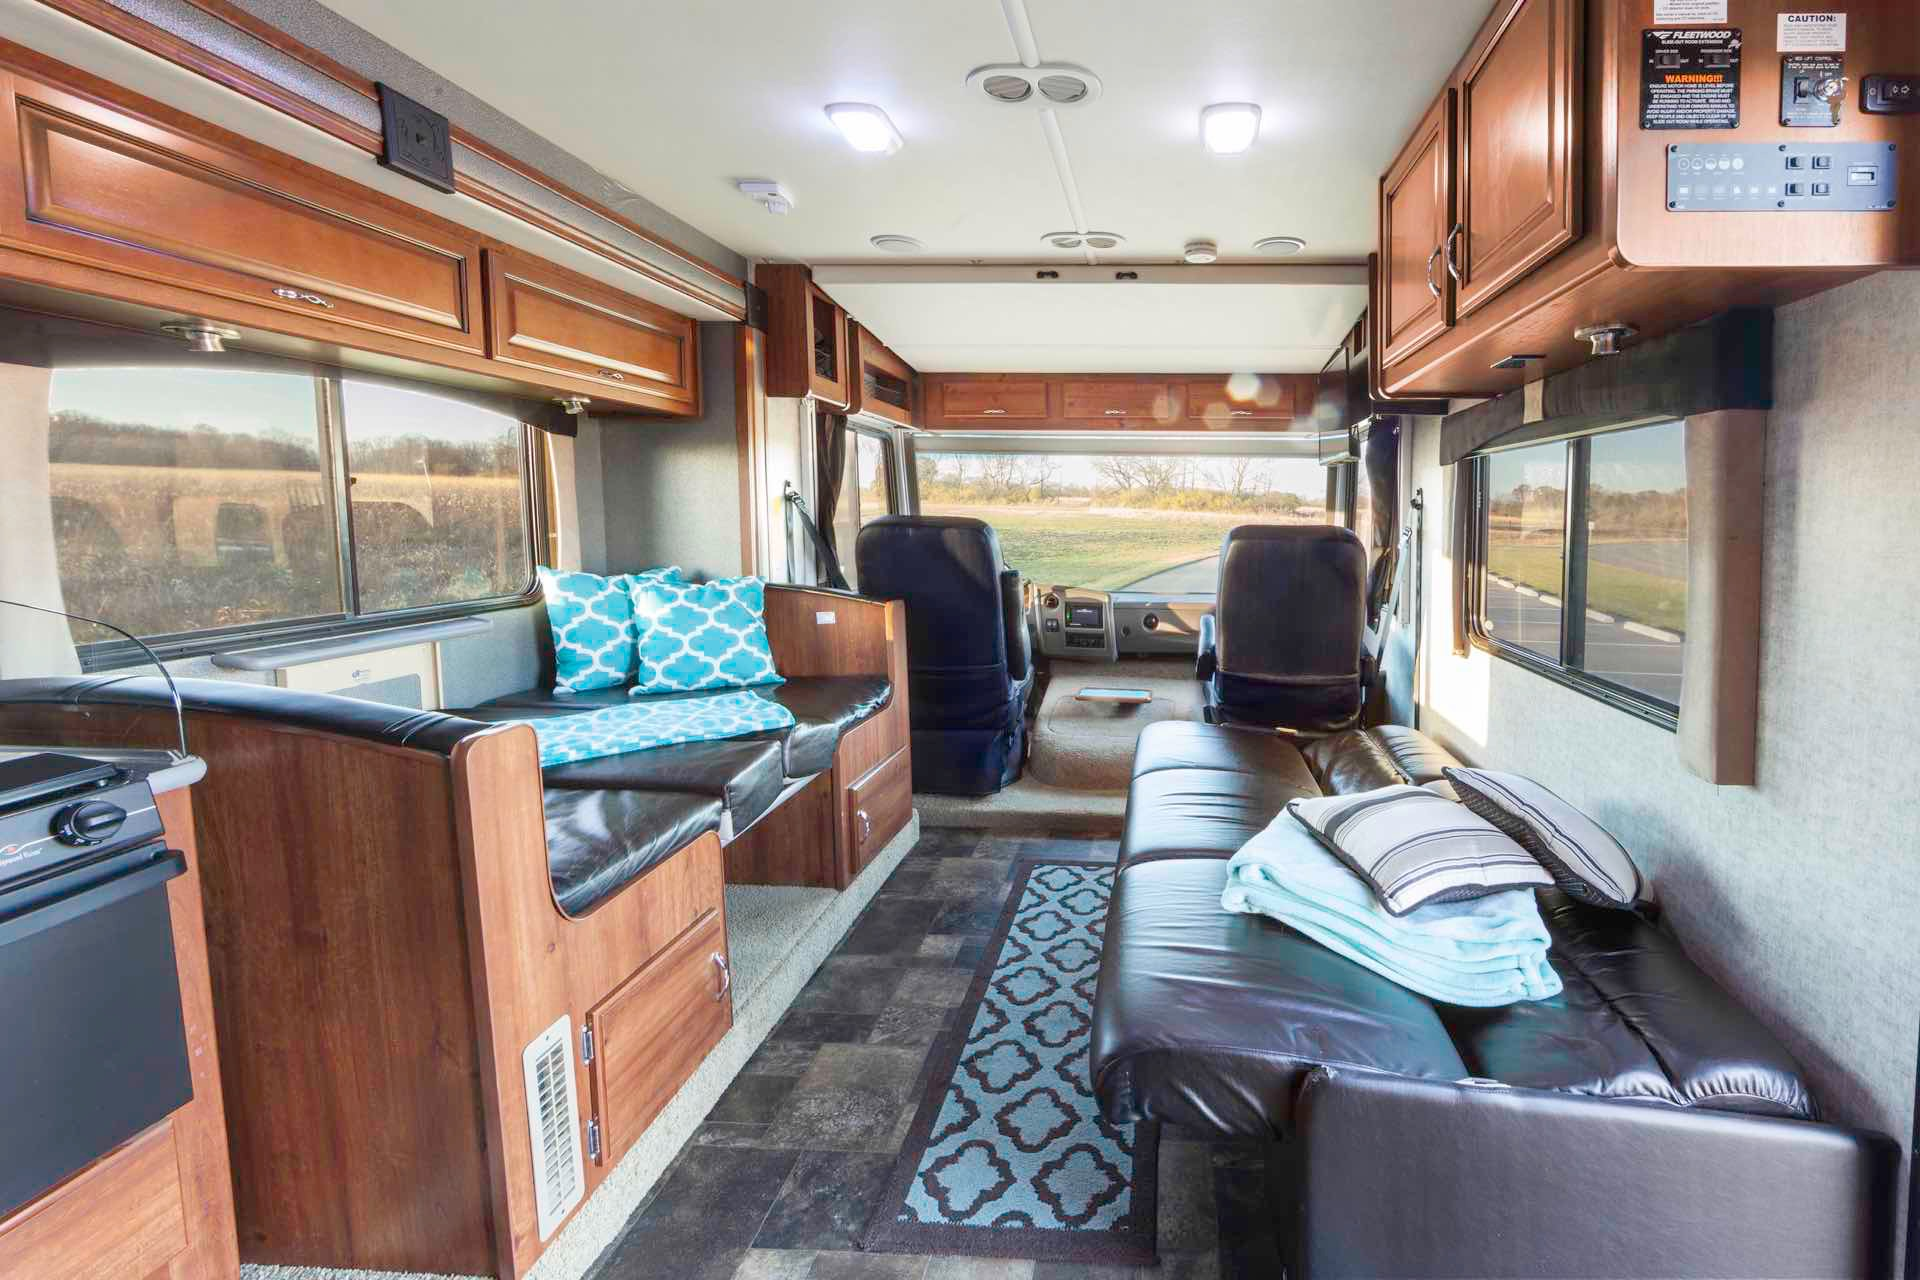 How to Take Photos That'll Make Every Renter Fall In Love With Your RV